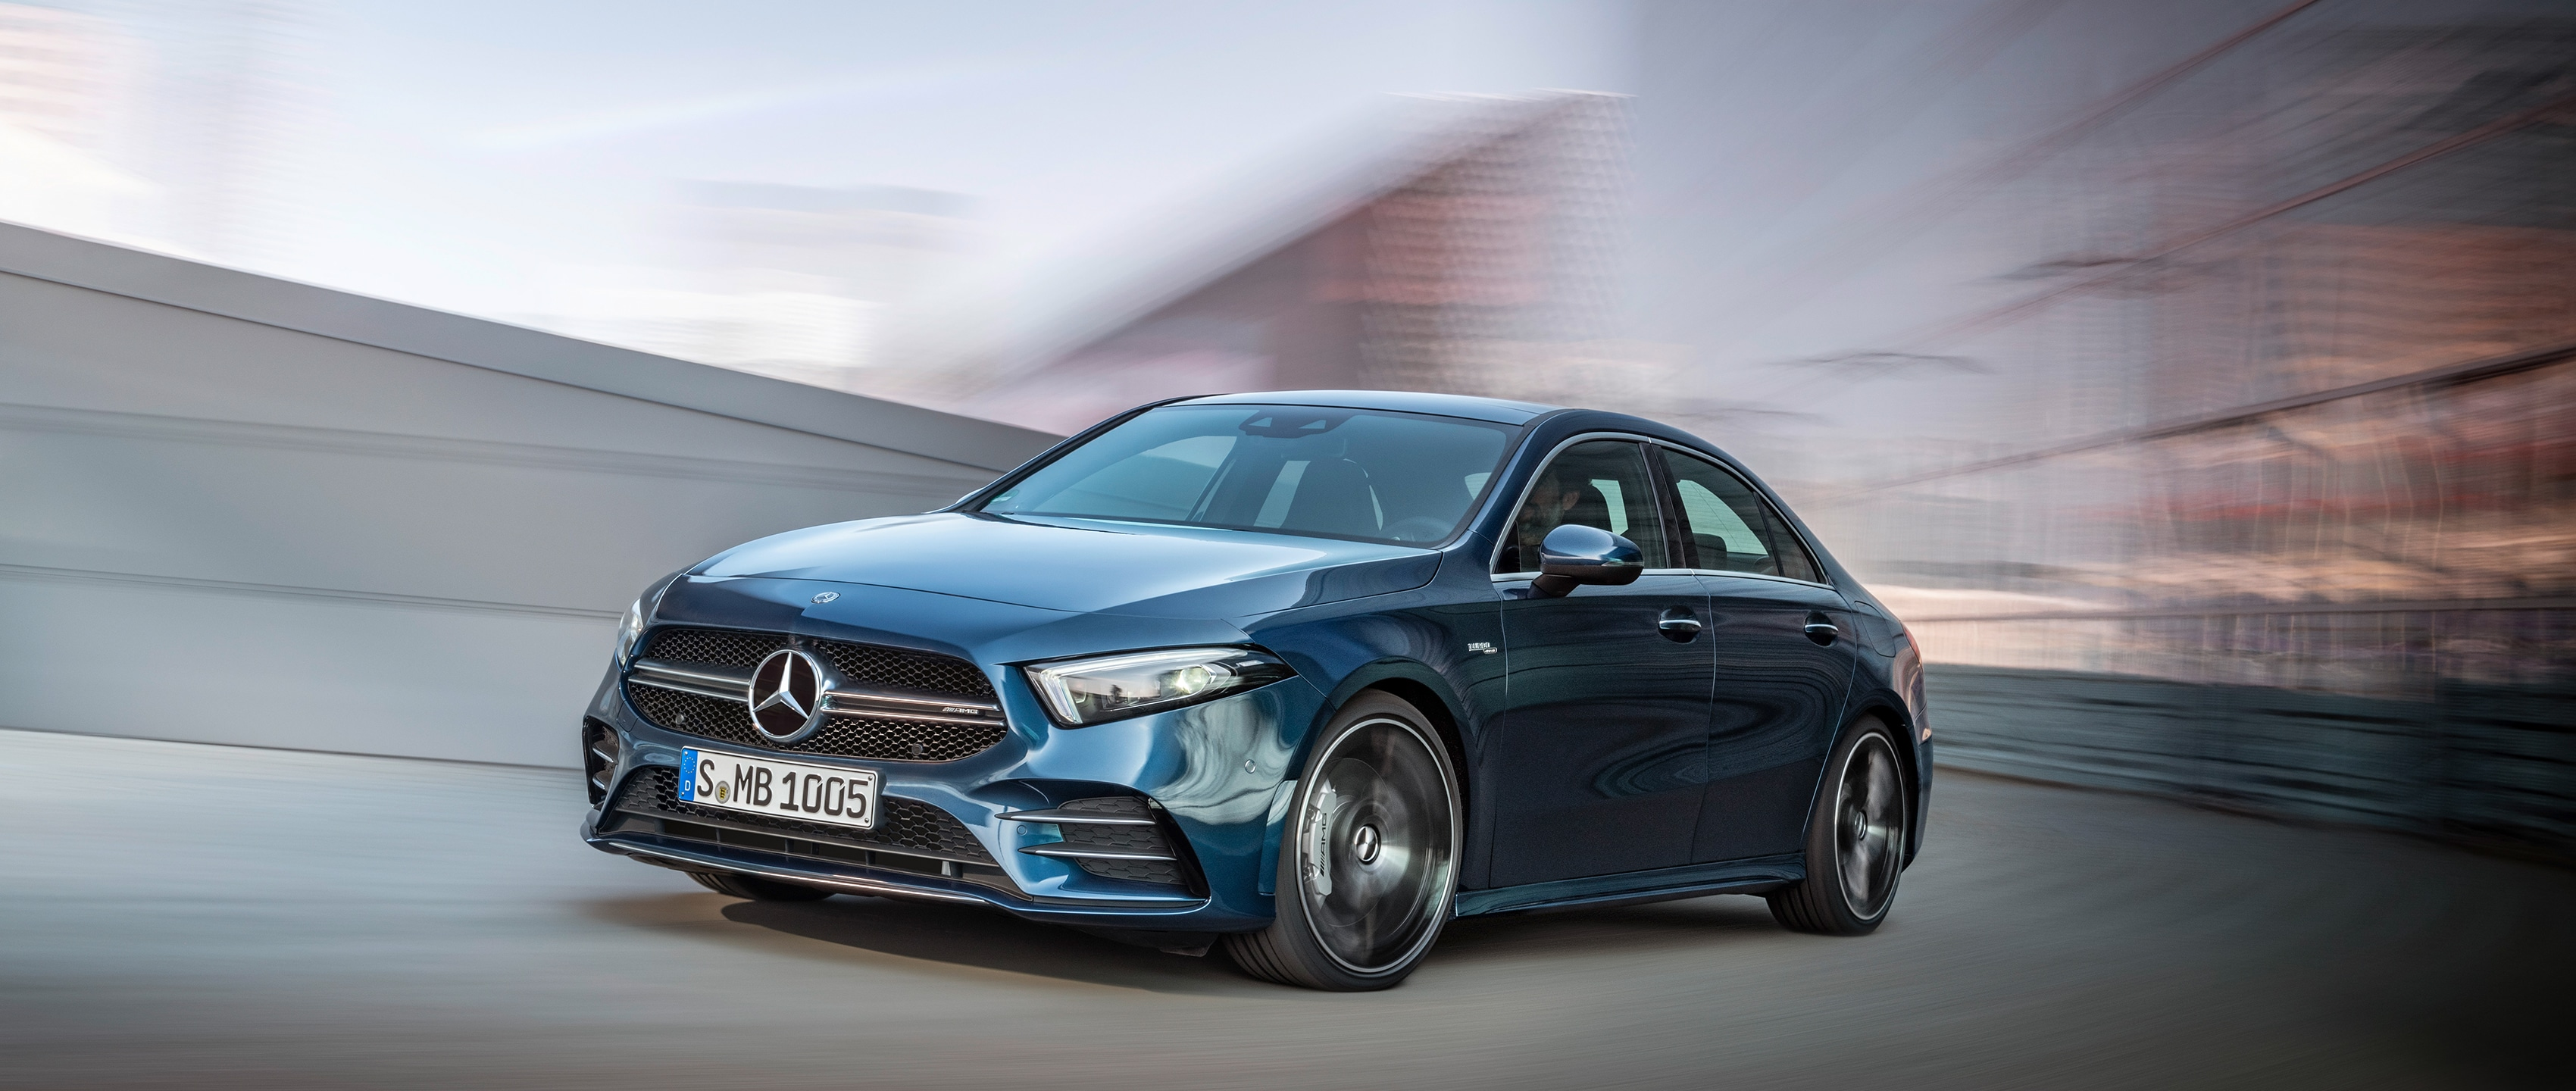 The new 2019 Mercedes-AMG A 35 4MATIC Saloon (V 177) in denim blue metallic in dynamic cornering.